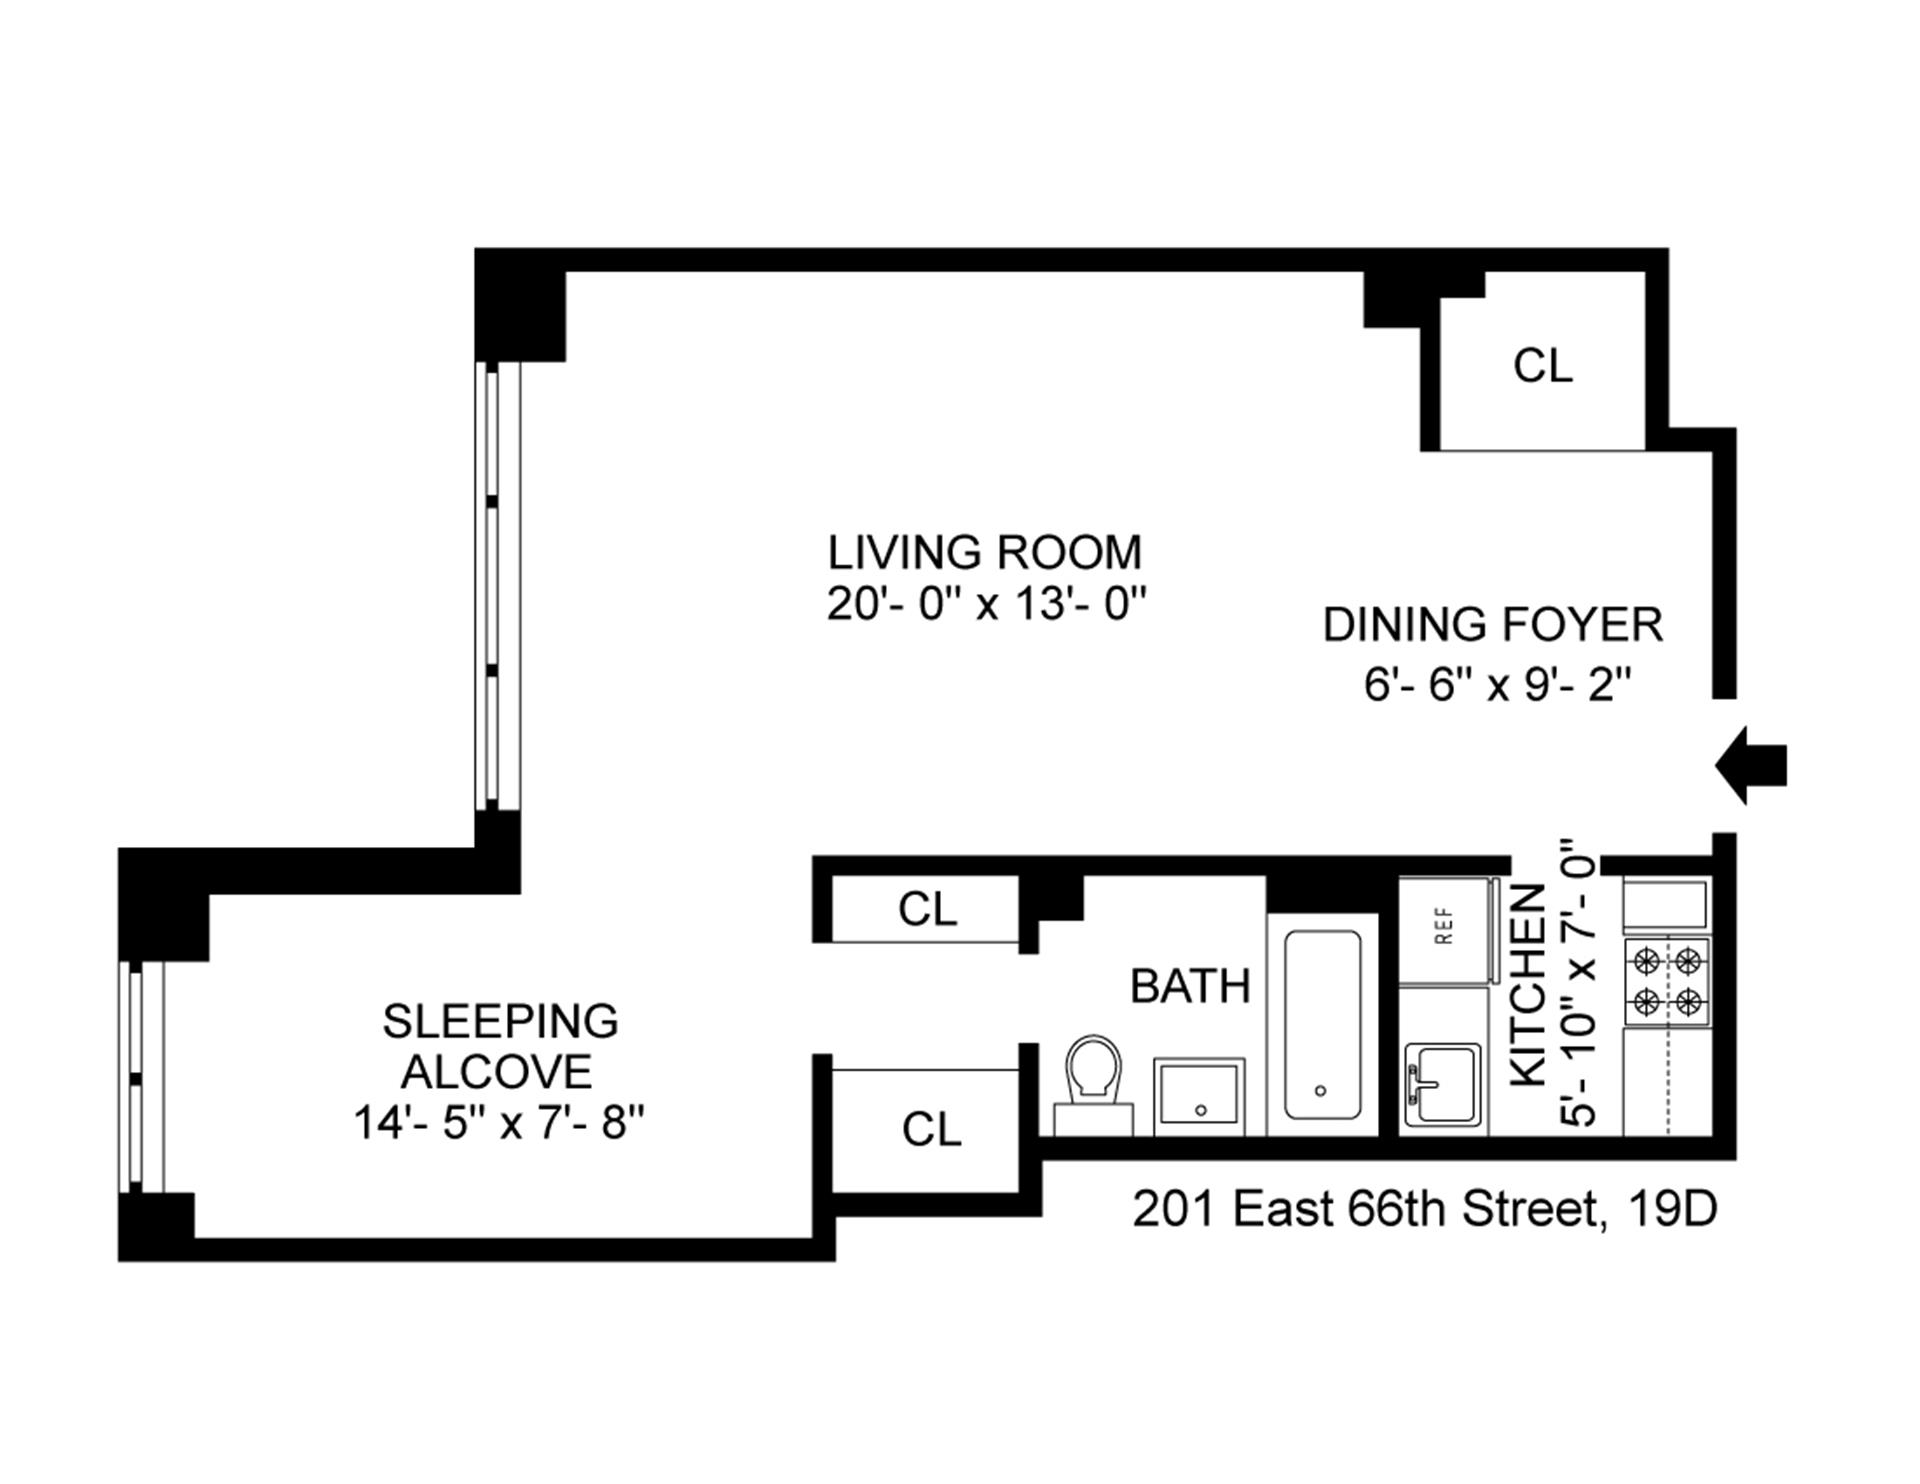 Floor plan of 201 East 66th St, 19D - Upper East Side, New York